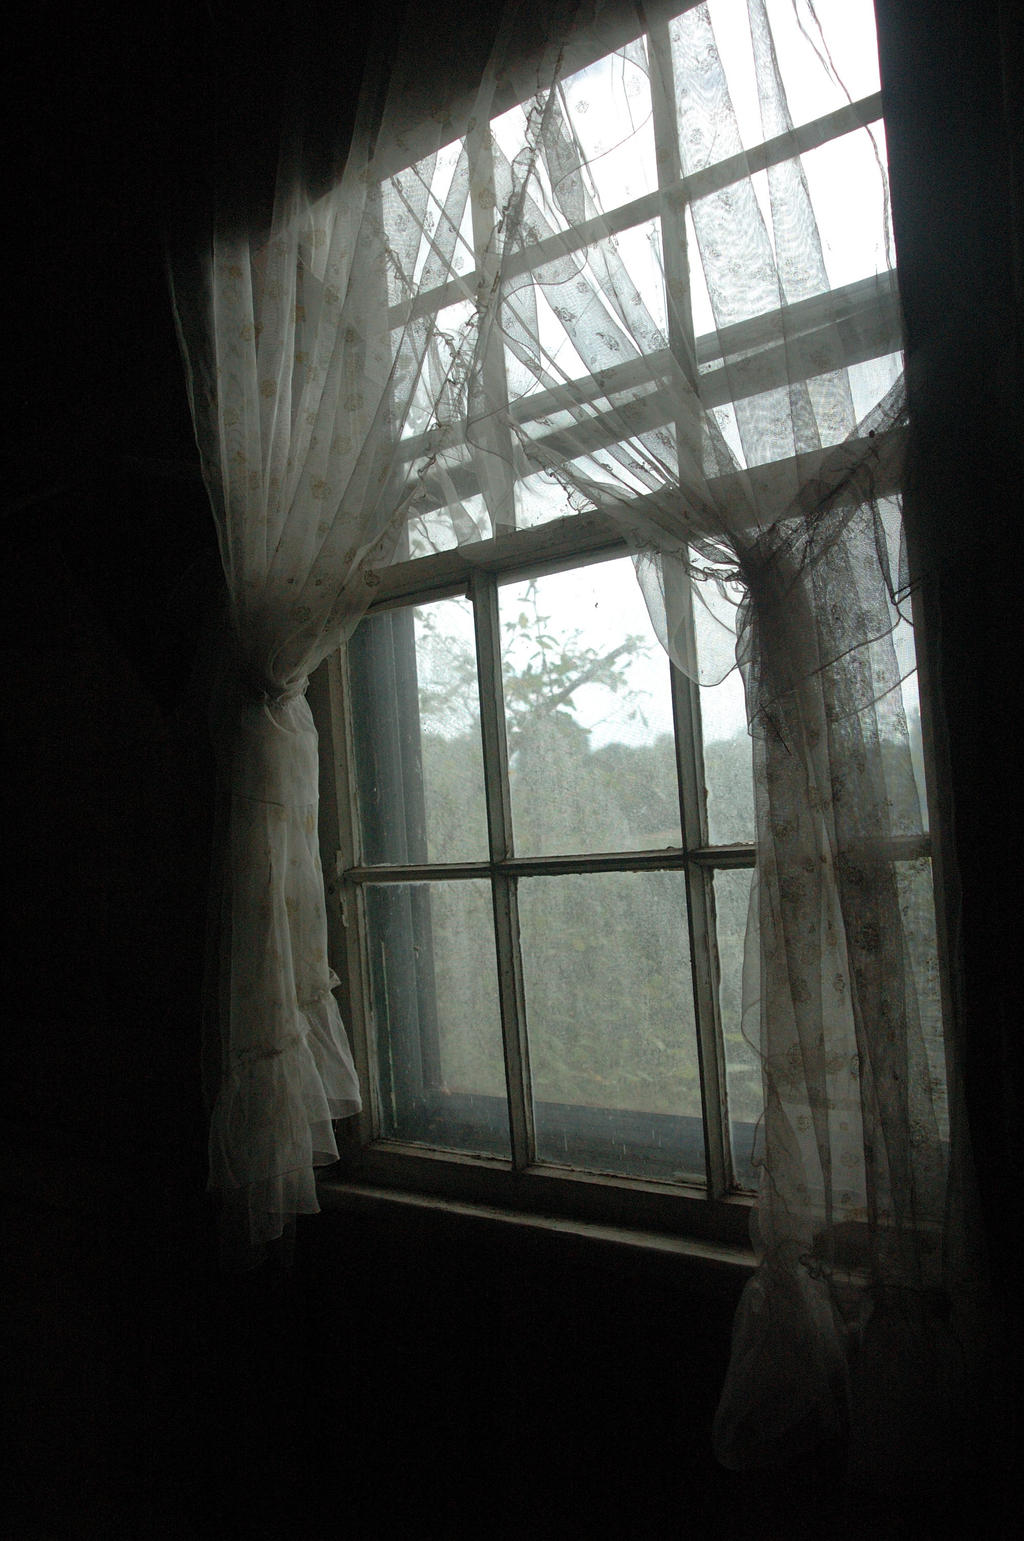 Window With old lace curtains